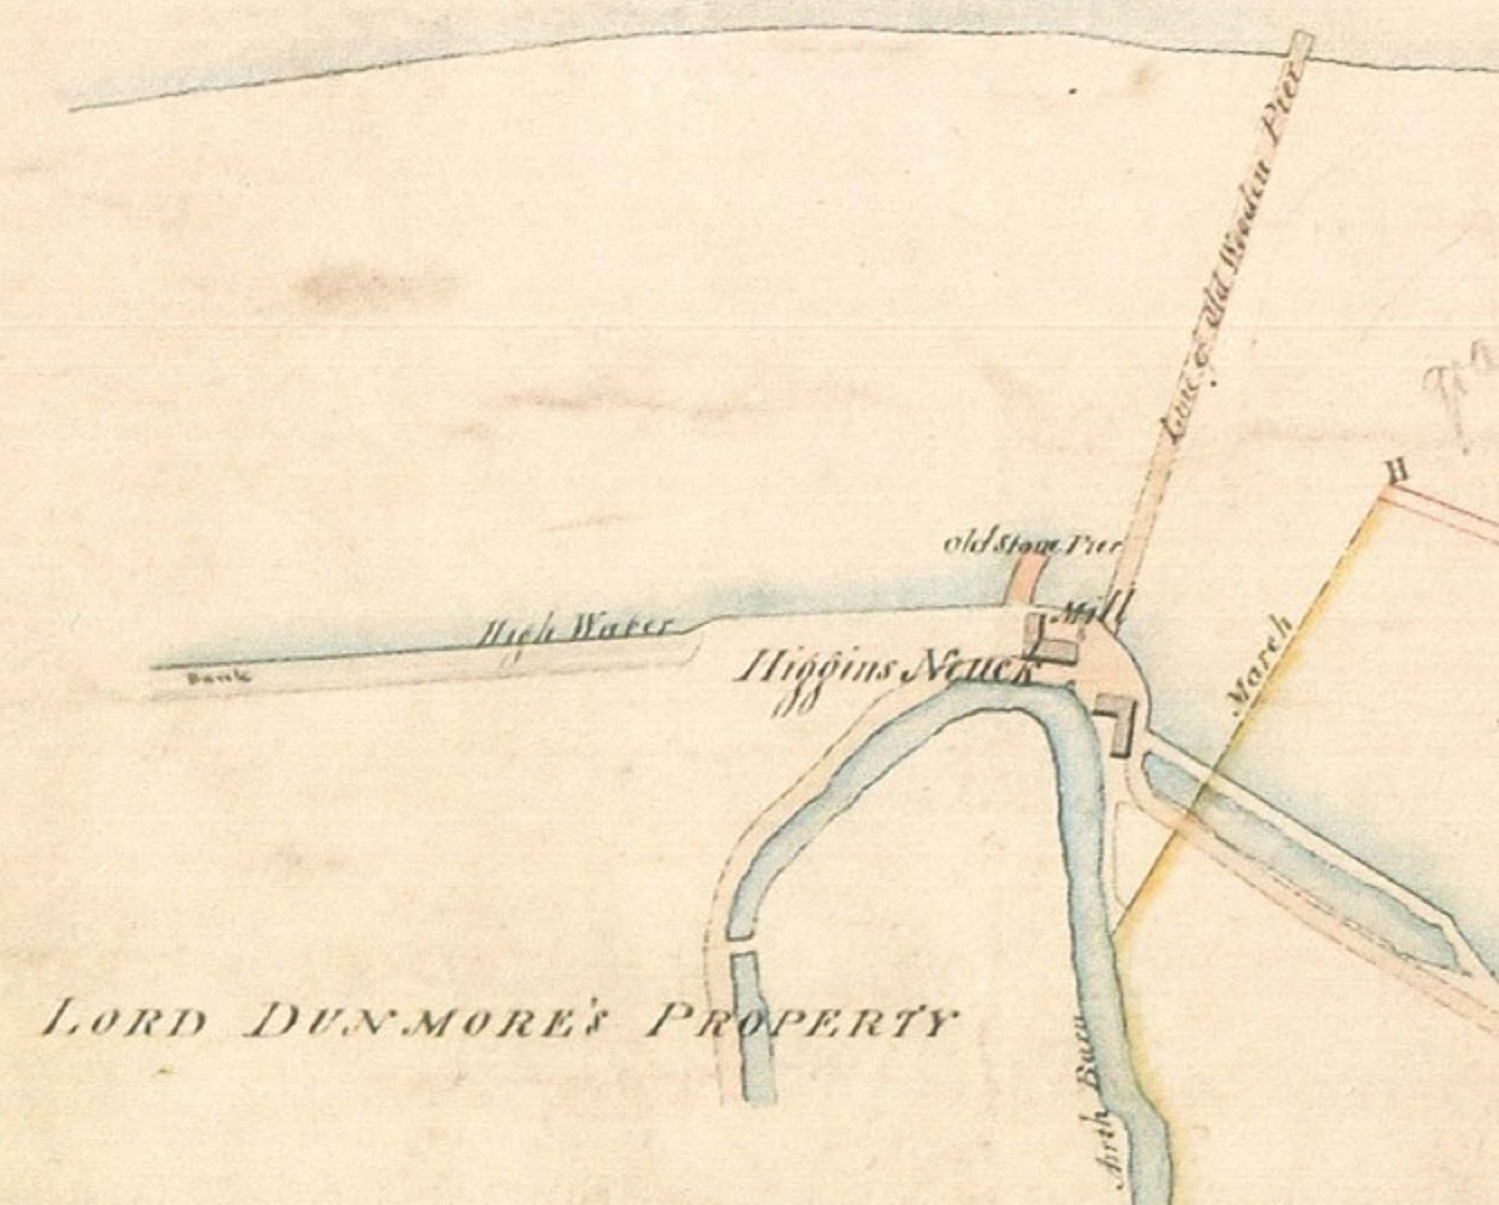 1828 map which shows two buildings, two old piers and a watercourse